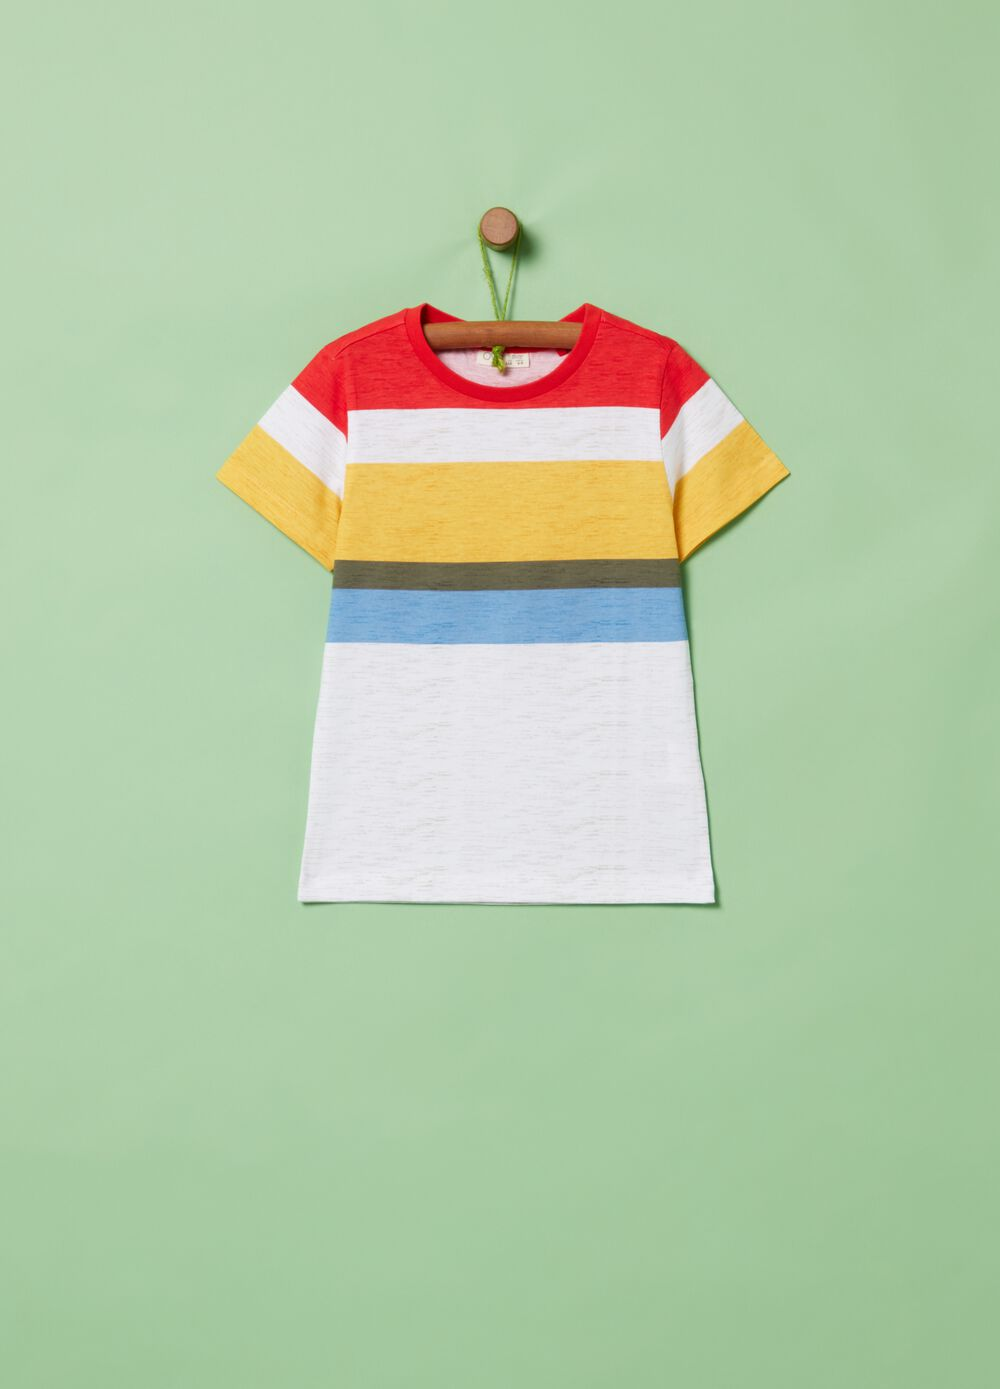 Iridescent-effect T-shirt with stripes